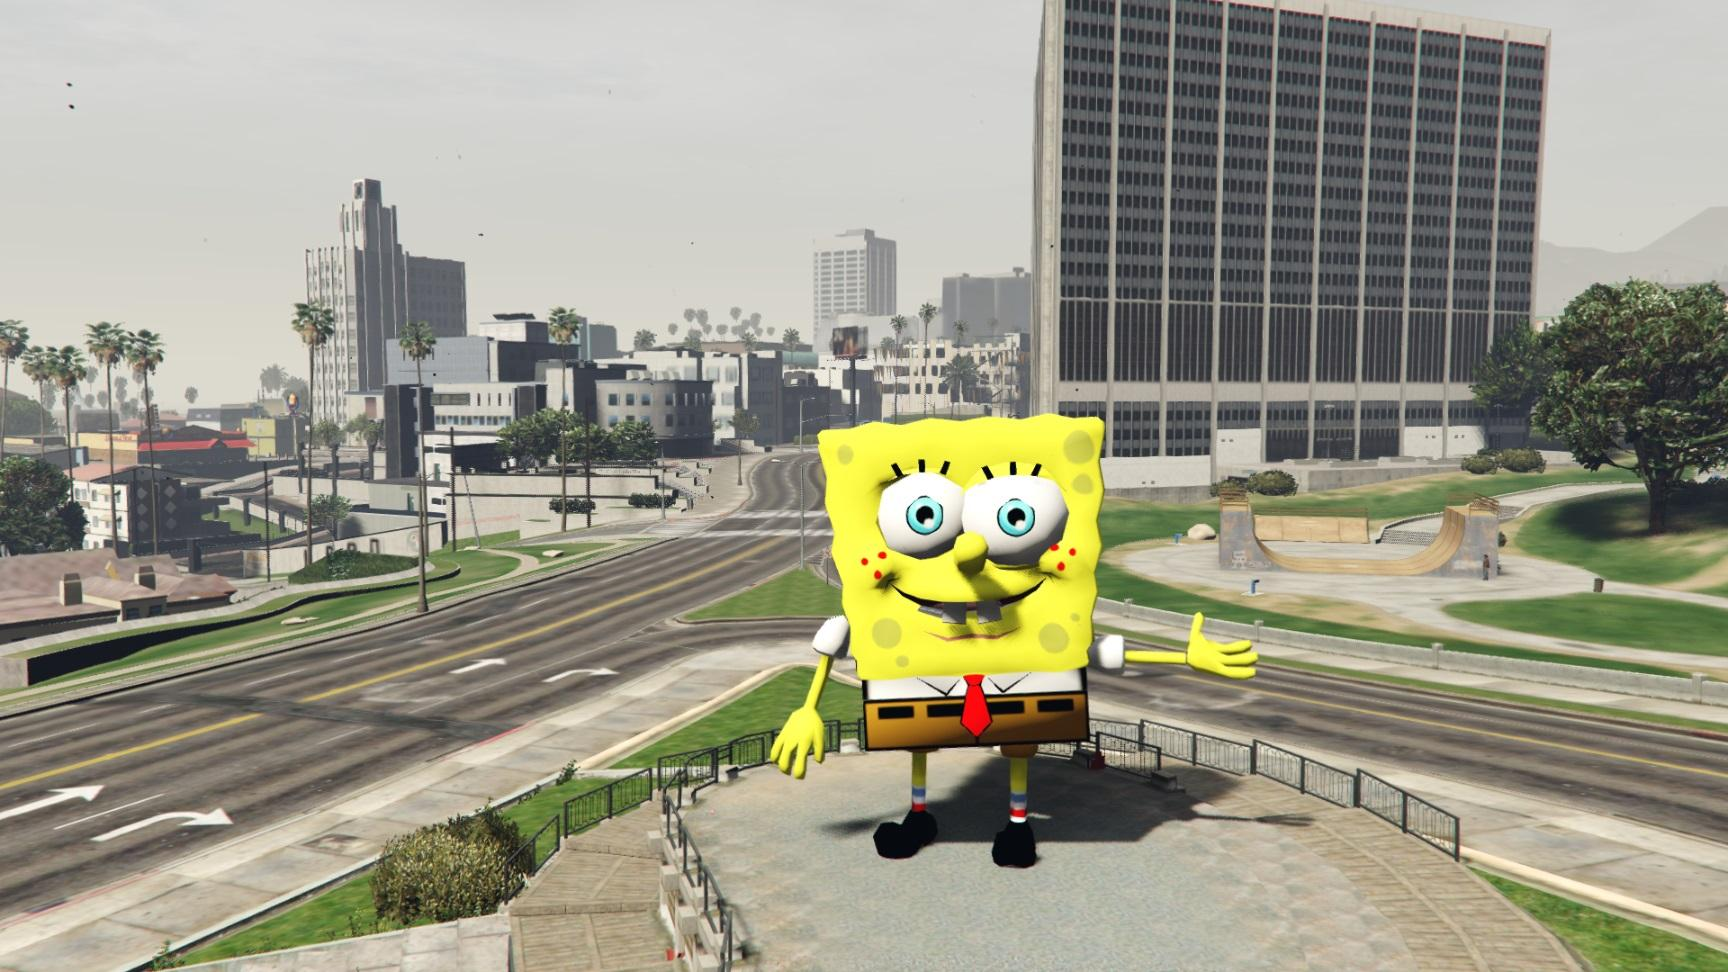 hd spongebob statue gta5. Black Bedroom Furniture Sets. Home Design Ideas